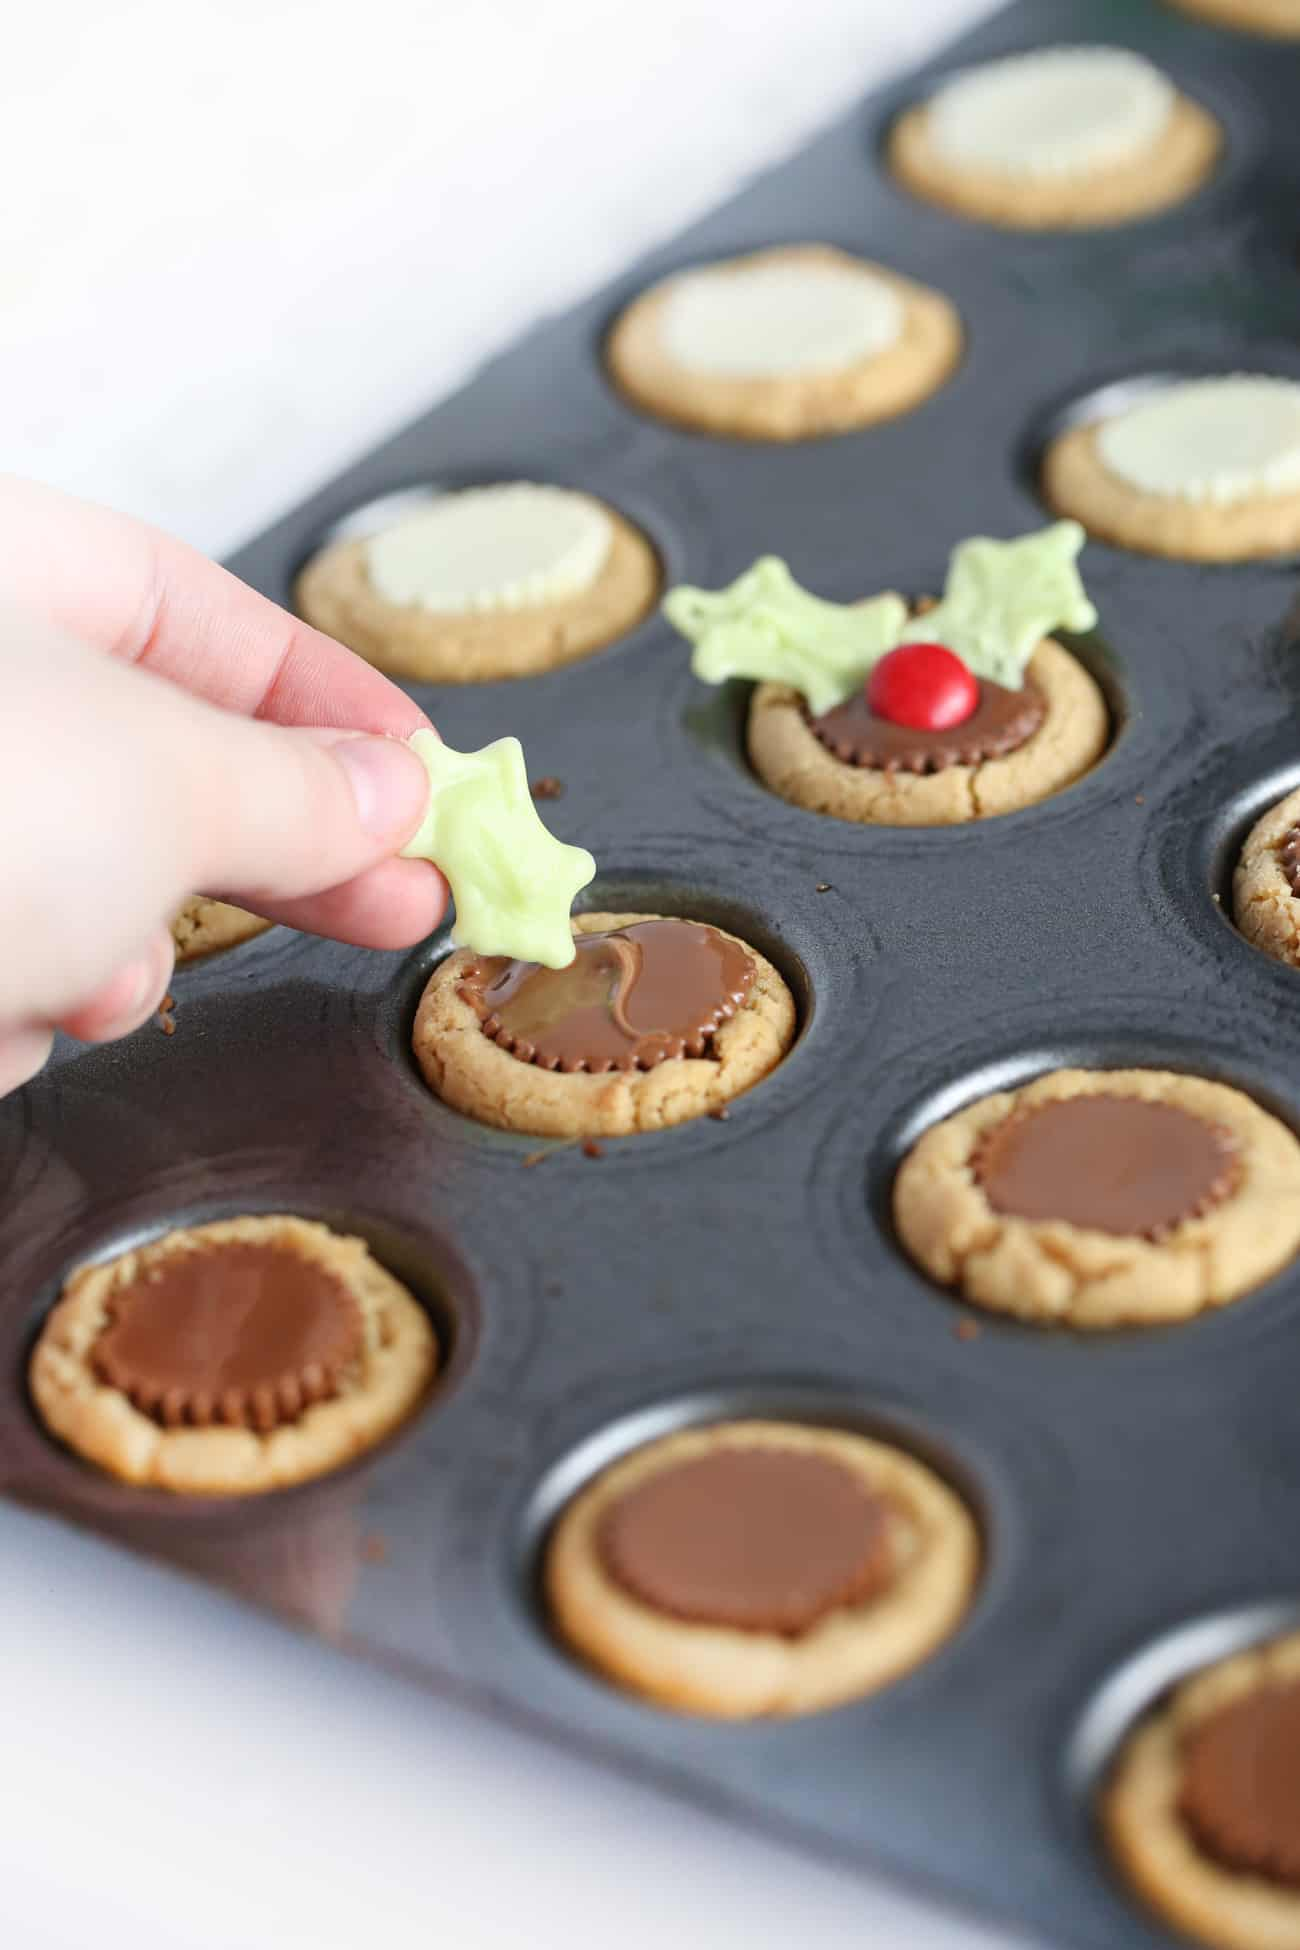 Hand placing white chocolate holly leaf into Reeses peanut butter cup cookie to make easy Christmas holly cookie cups.